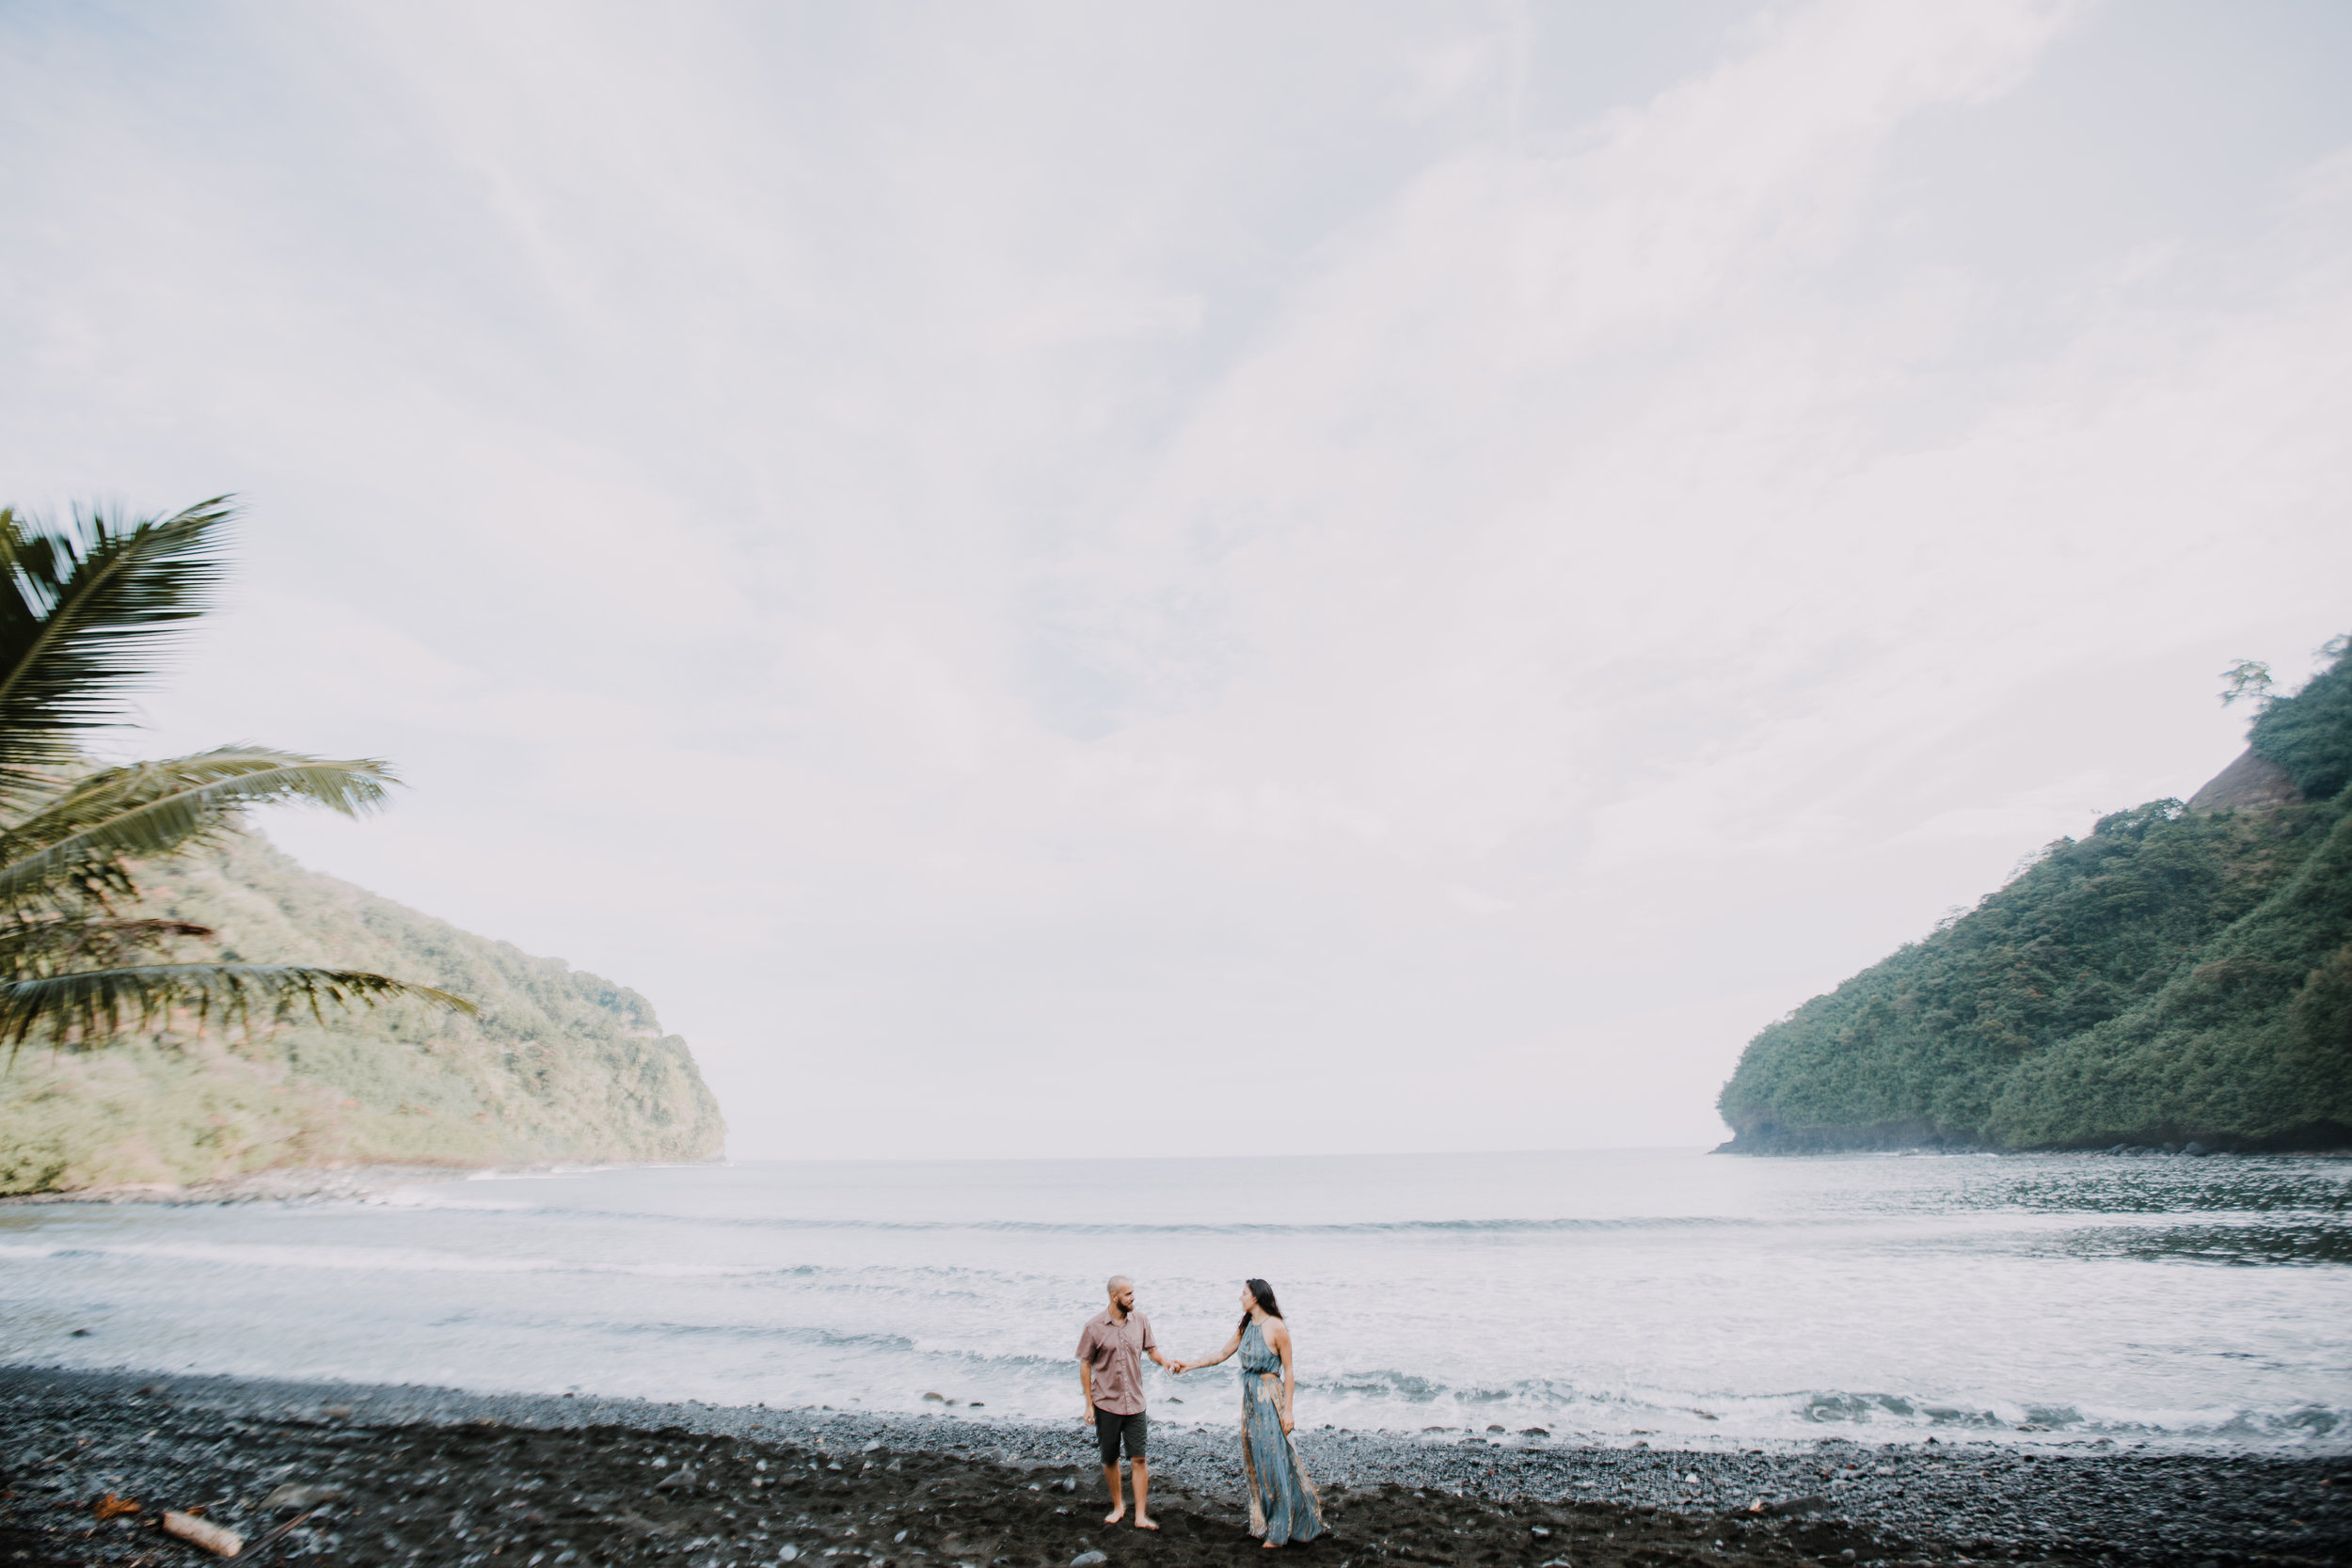 black beach in maui, island hiking, hawaii waterfall, road to hana, maui waterfall, hawaii wedding photographer, hawaii elopement photographer, maui wedding, maui engagements, maui elopement